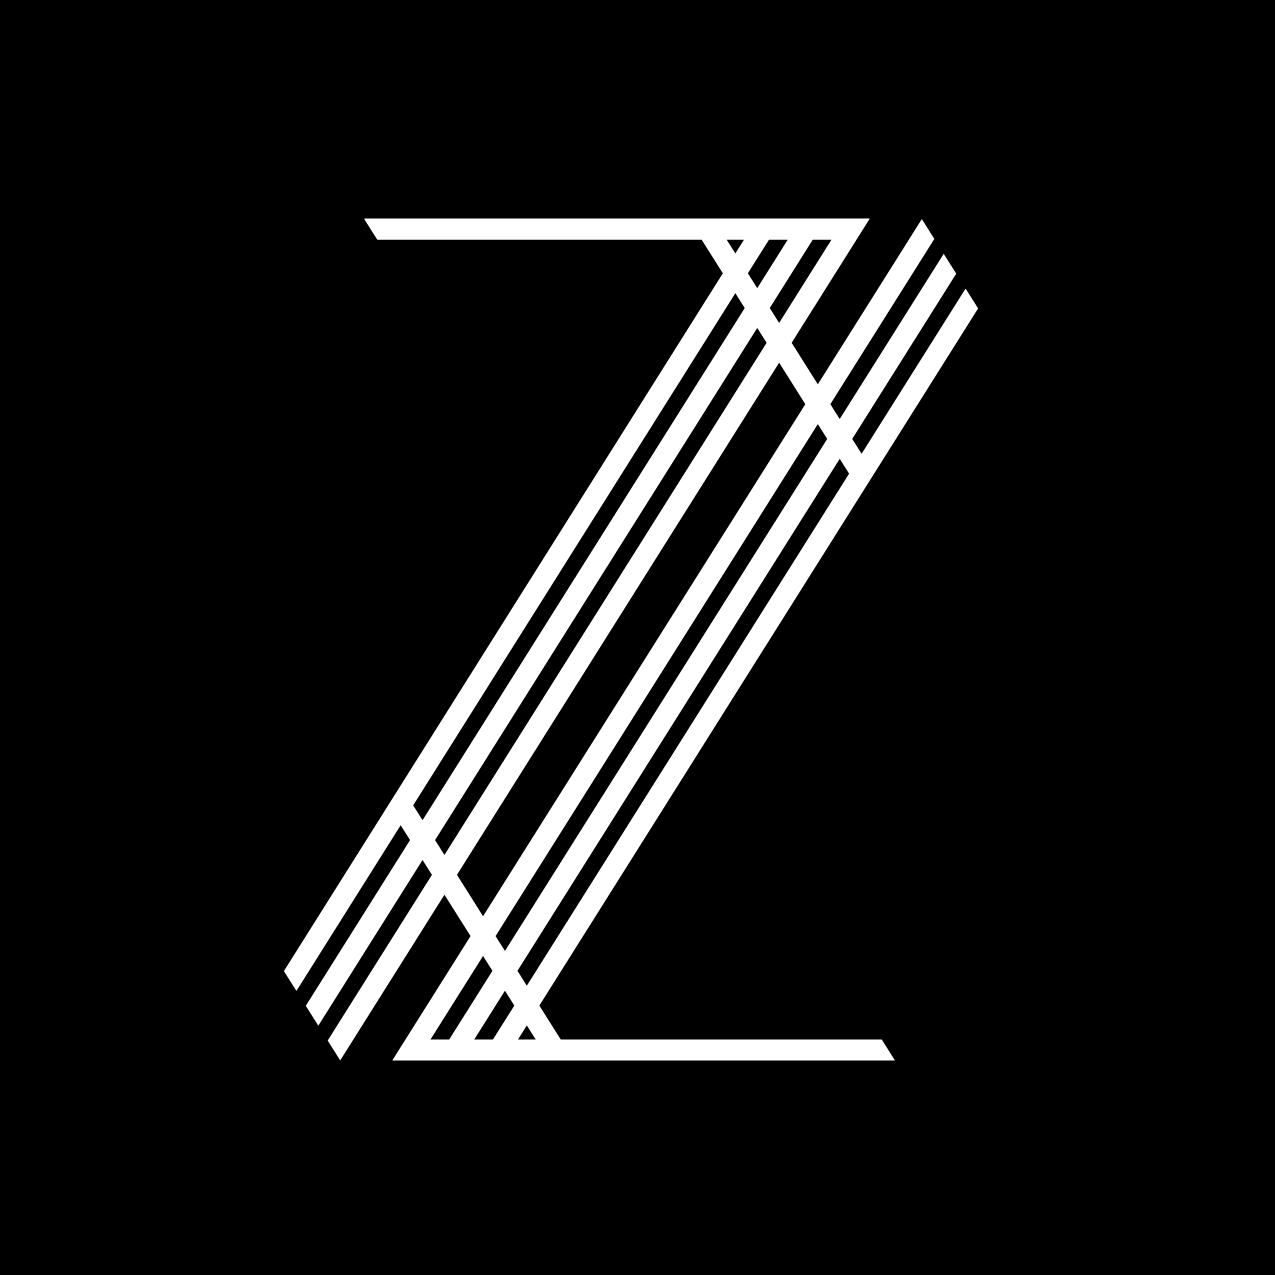 Letter Z14 Design by Furia